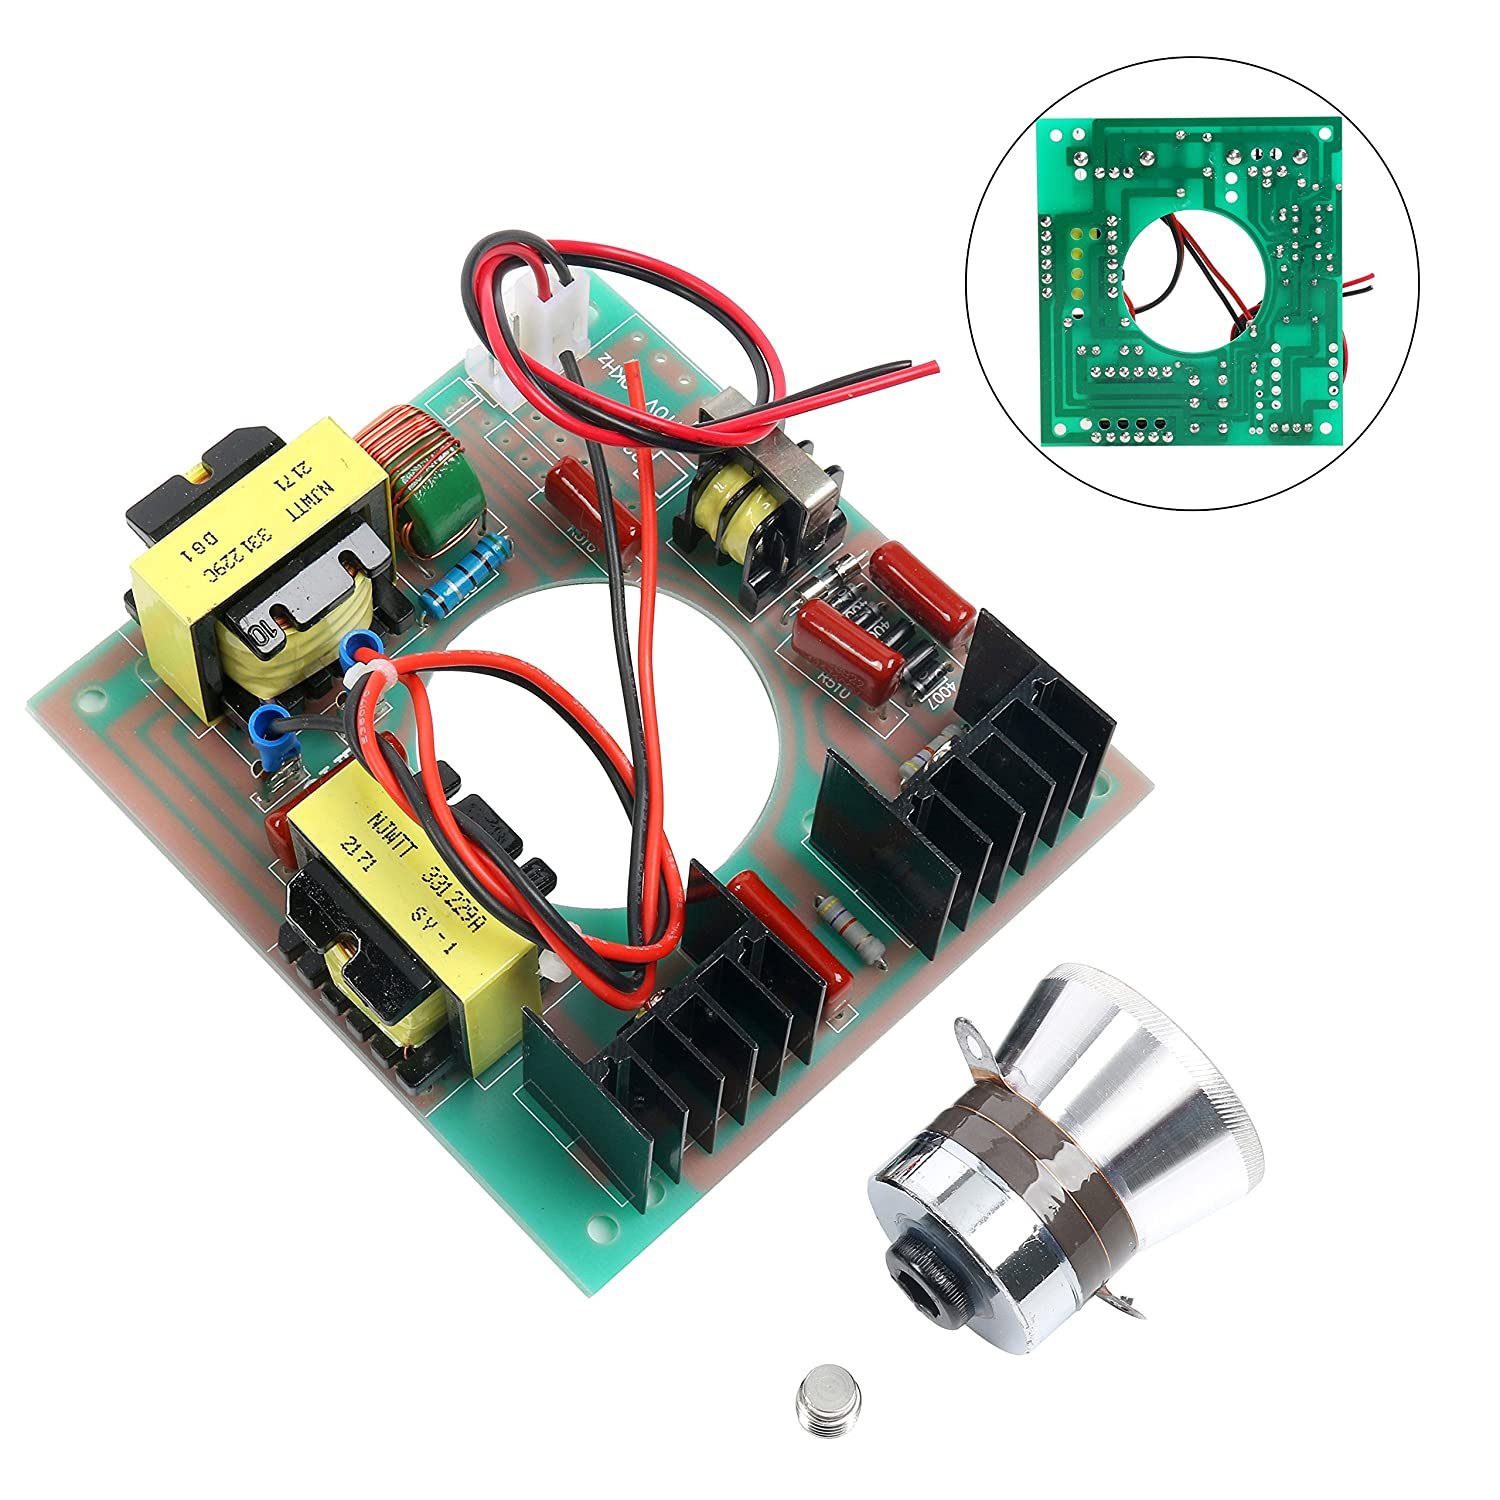 60w 40khz Ultrasonic Cleaning Transducer Cleaner Power Driver Circuit Medium Ultrasound Circuits Board 110v Ac Industrial Scientific